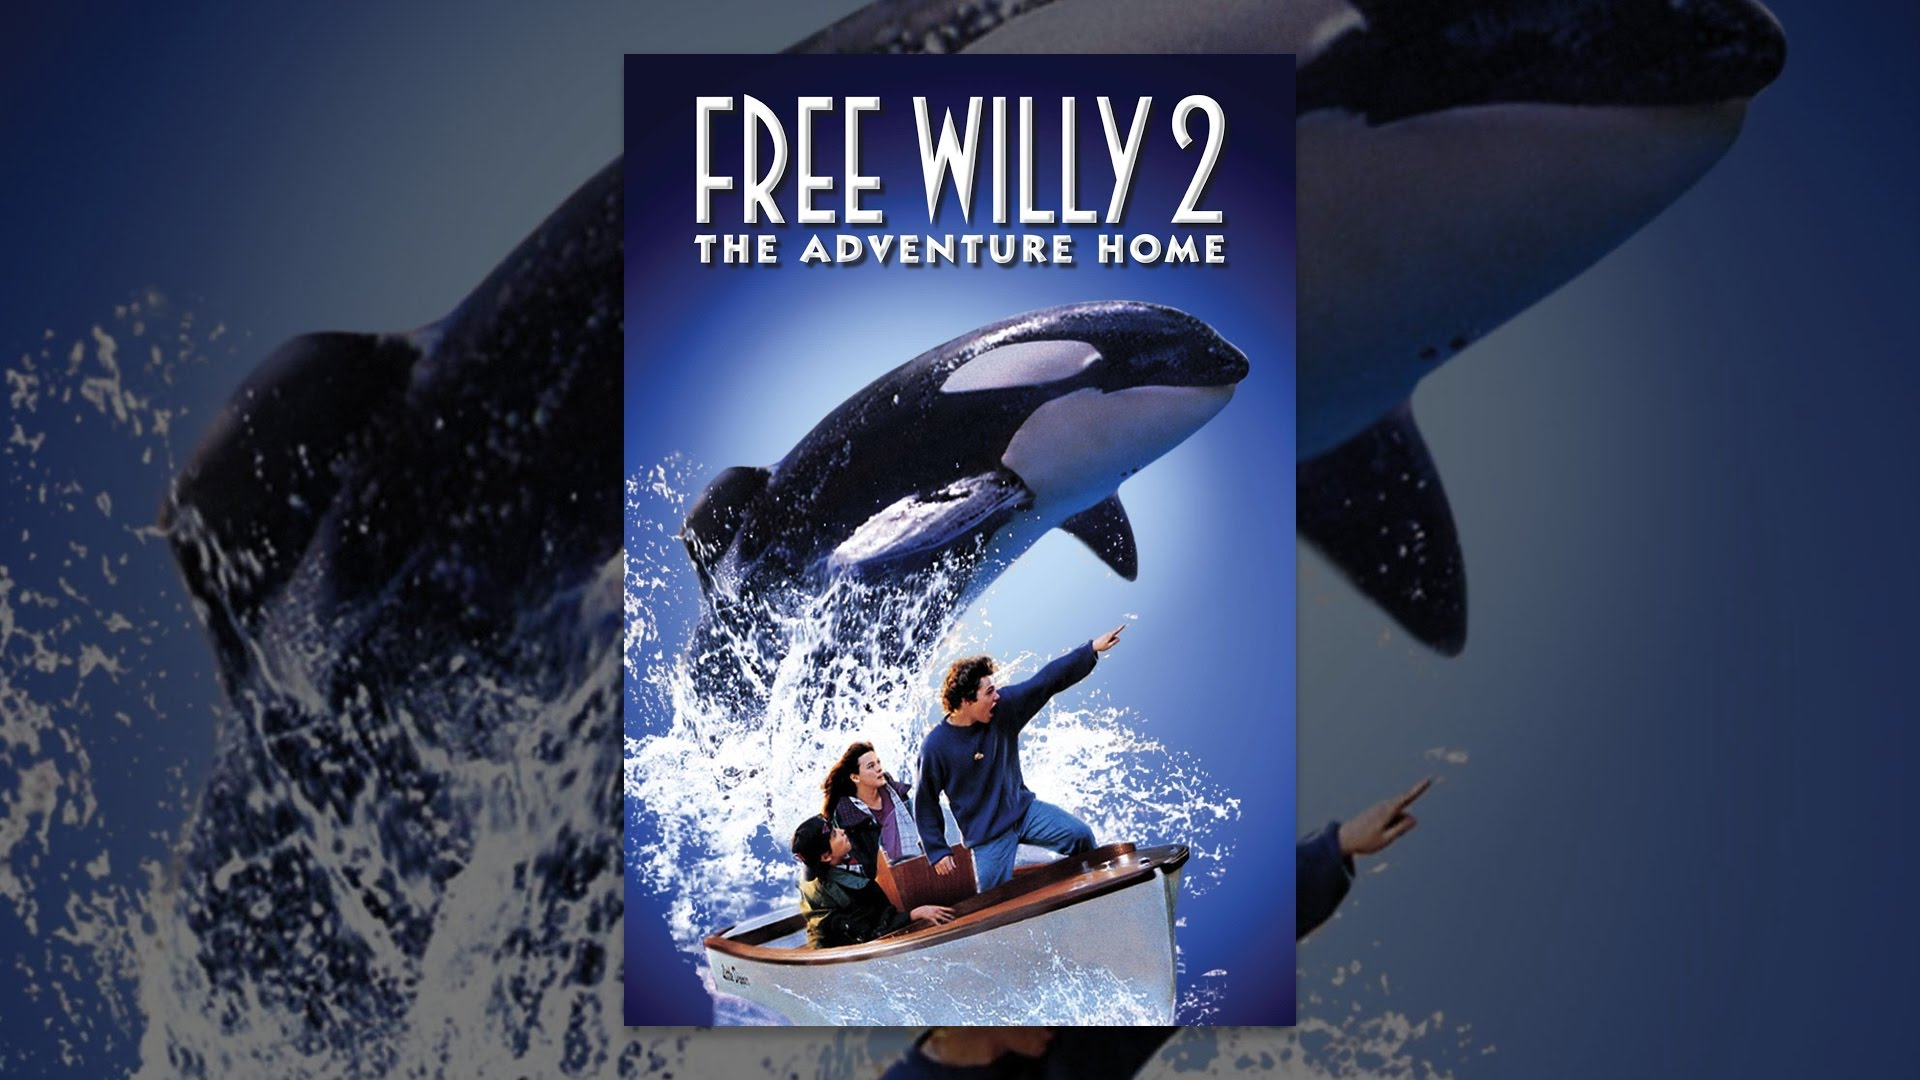 free willy 2 Watch free willy 2: the adventure home (1995) - willy the smart and rebellious whale and jessie the orphaned boy team up to escape willy's captivity and horrible owner to get back to his pod.